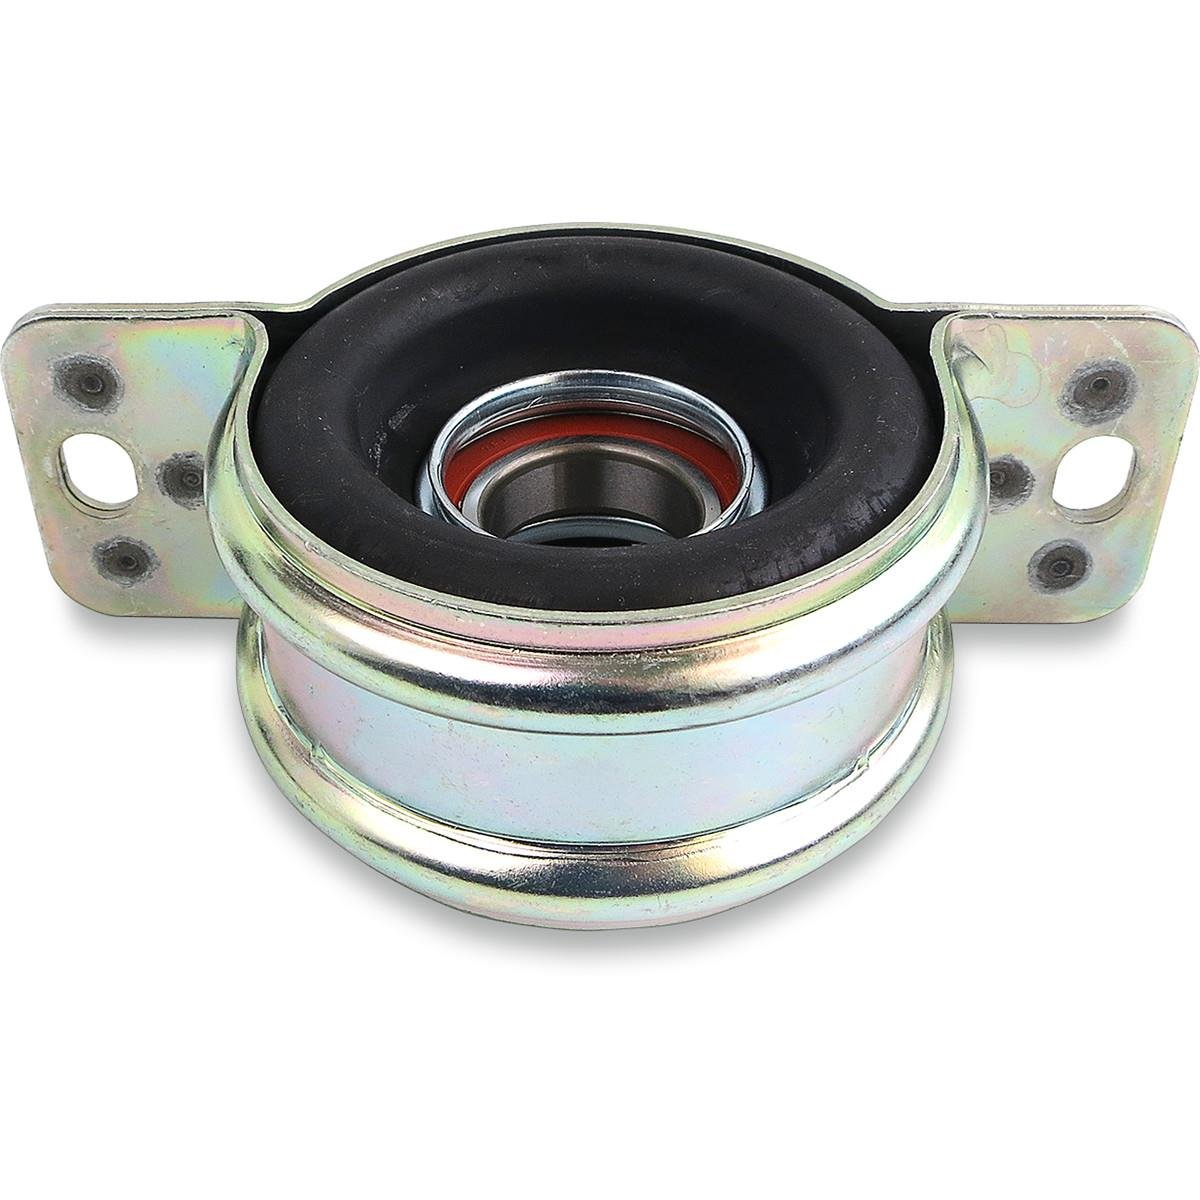 EPI Driveshaft Bearing Assembly